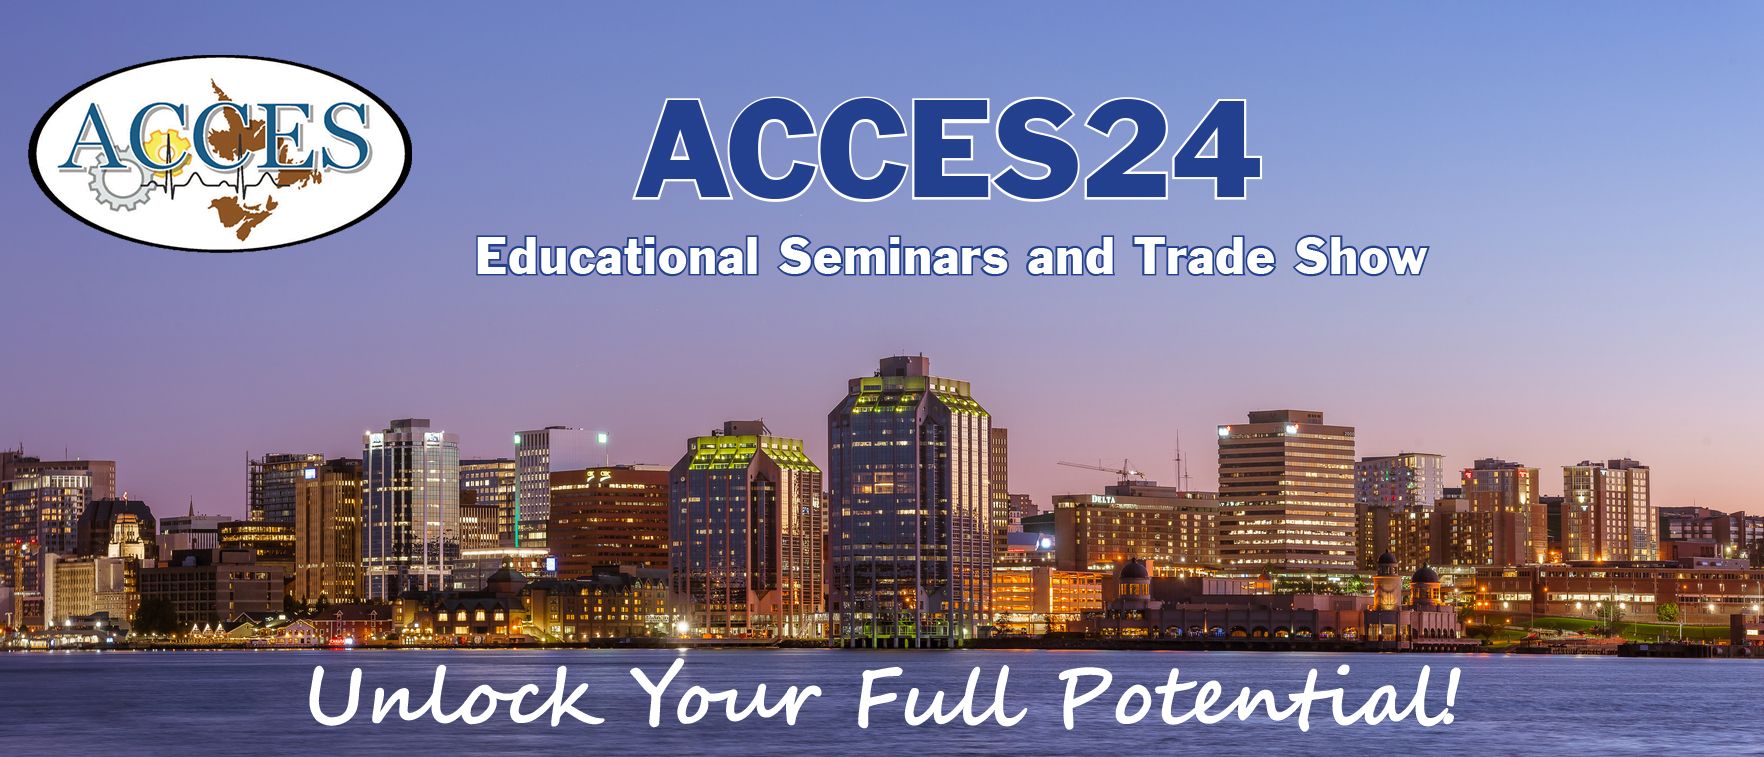 ACCES24 Educational Seminars and Trade Show